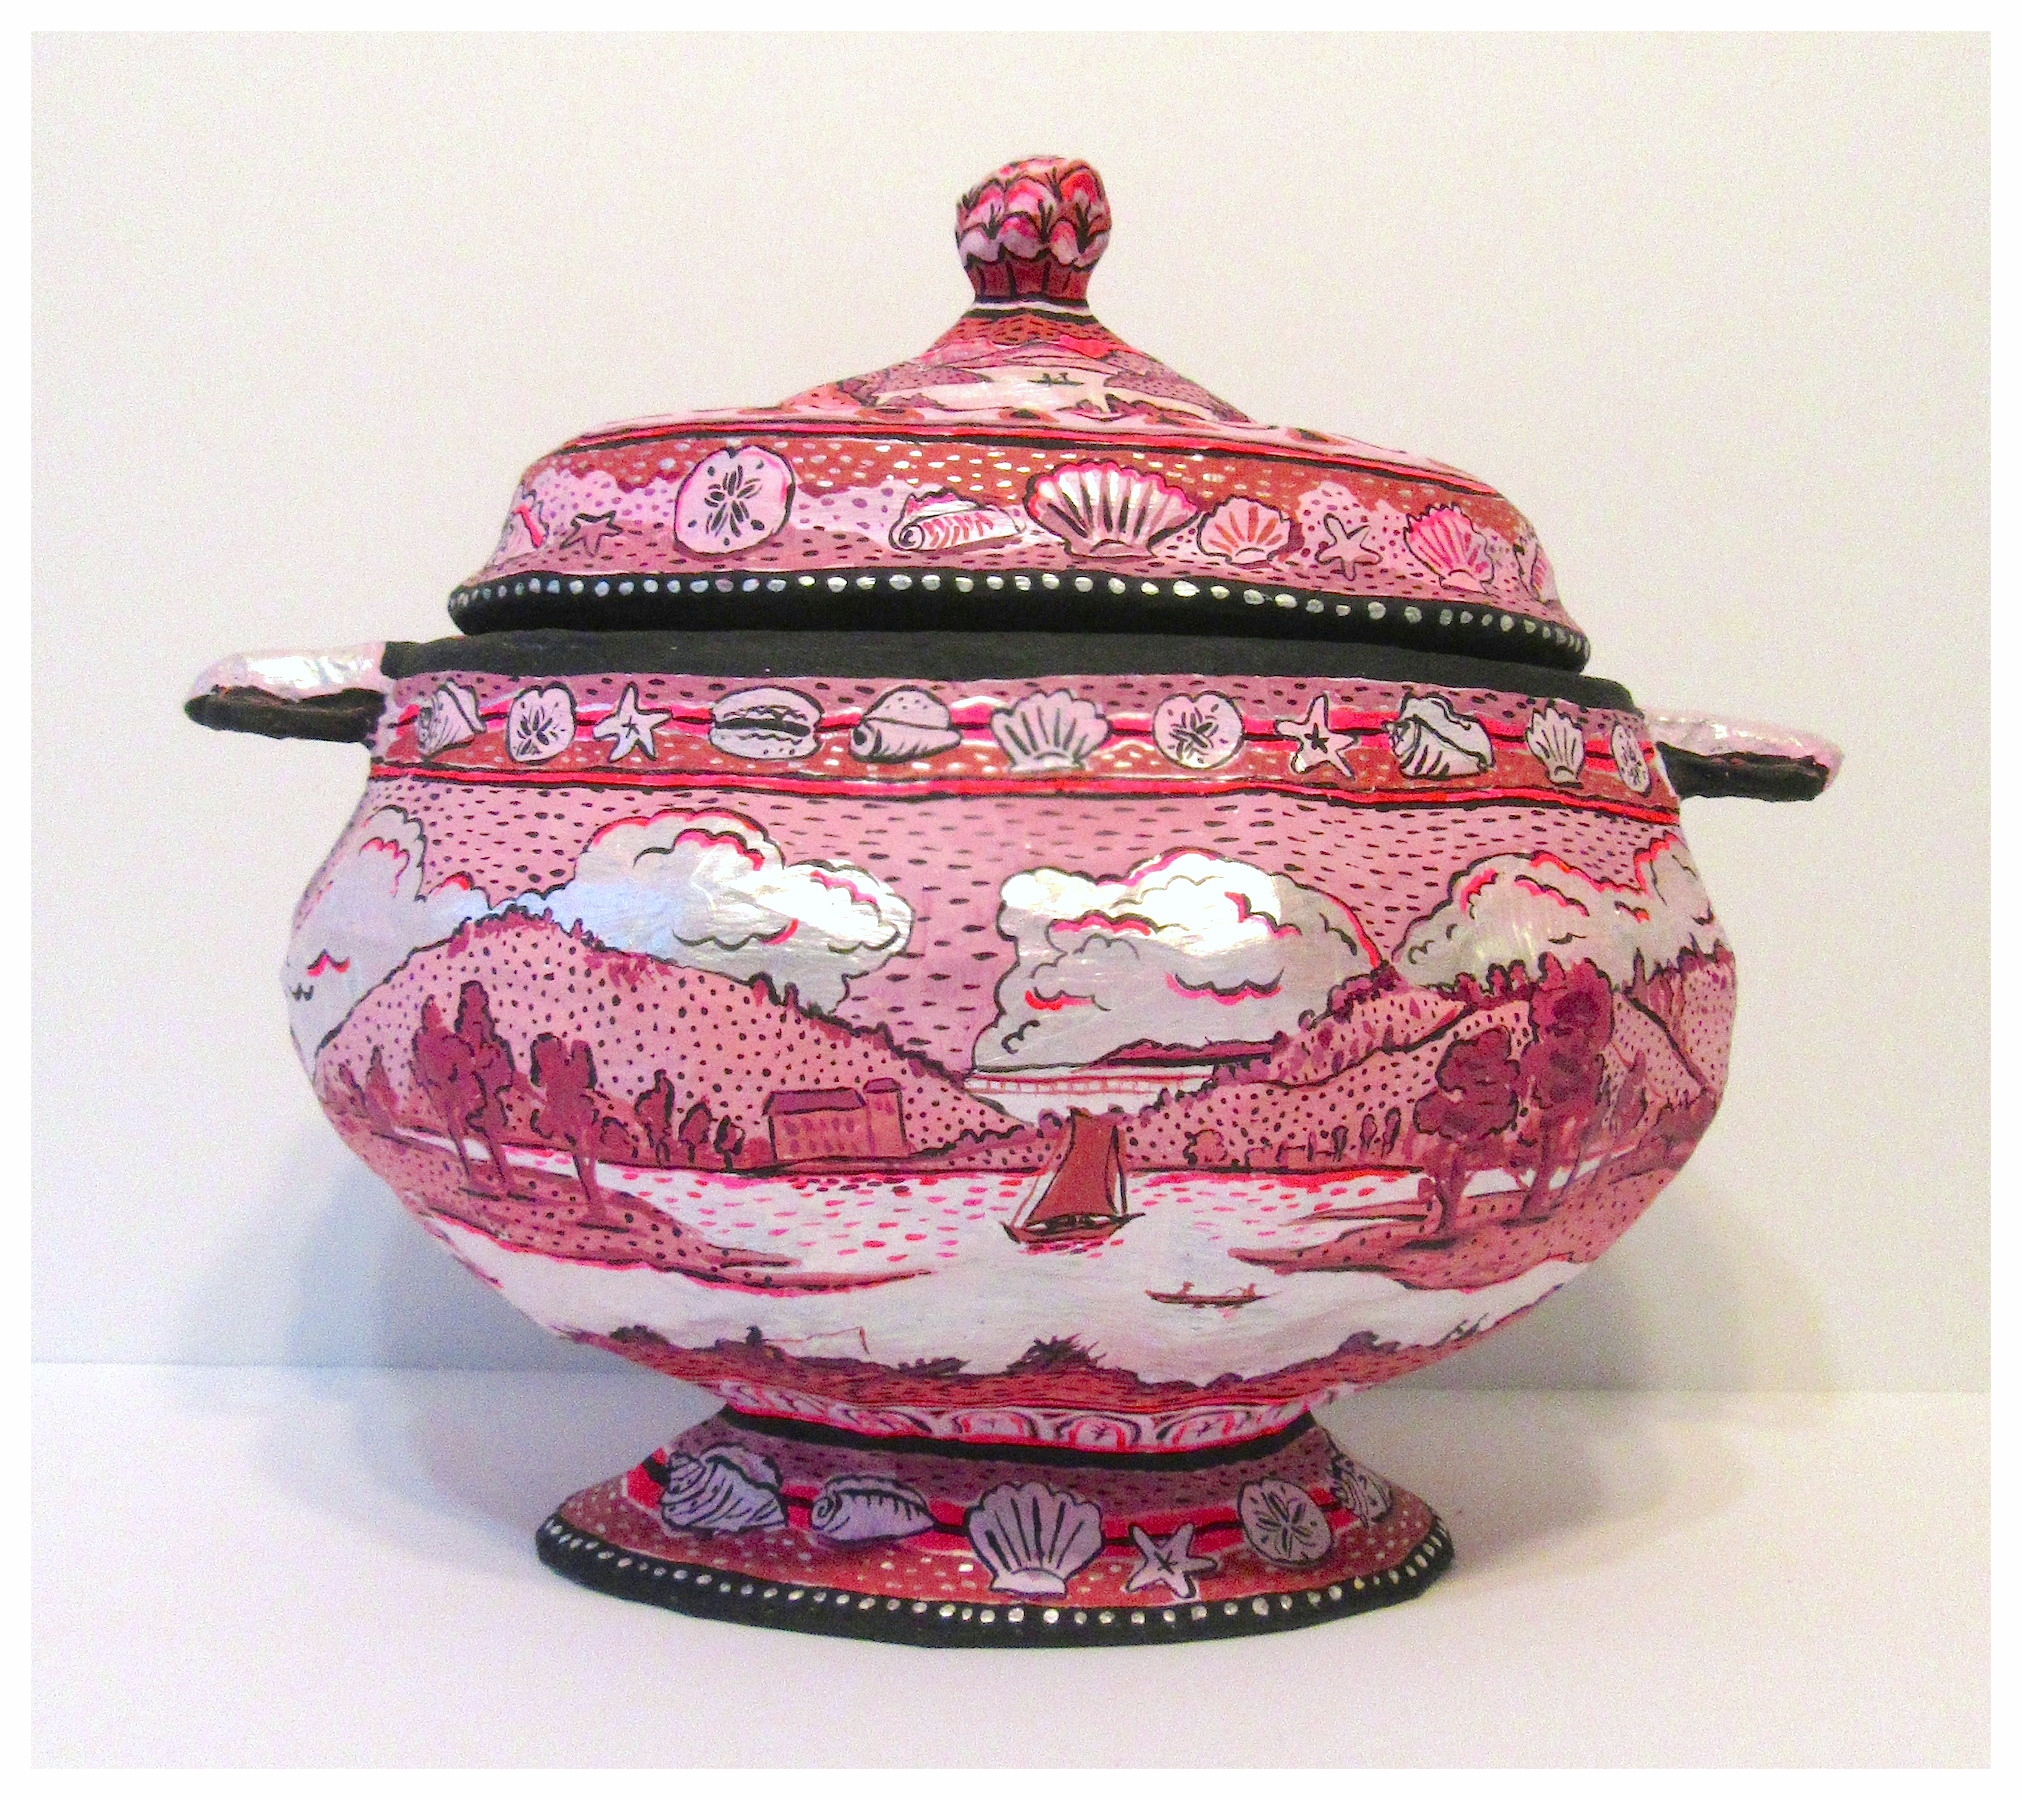 """Soup Tureen   """"Modeled after an Enoch and Sons piece entitled""""Belleville on the Pasaic River""""  Paper mache, masking tape ,bubble wrap 2017  aproximately 15 inches by 12 inches  Made exclusively for Bergdorf Goodman holiday window"""